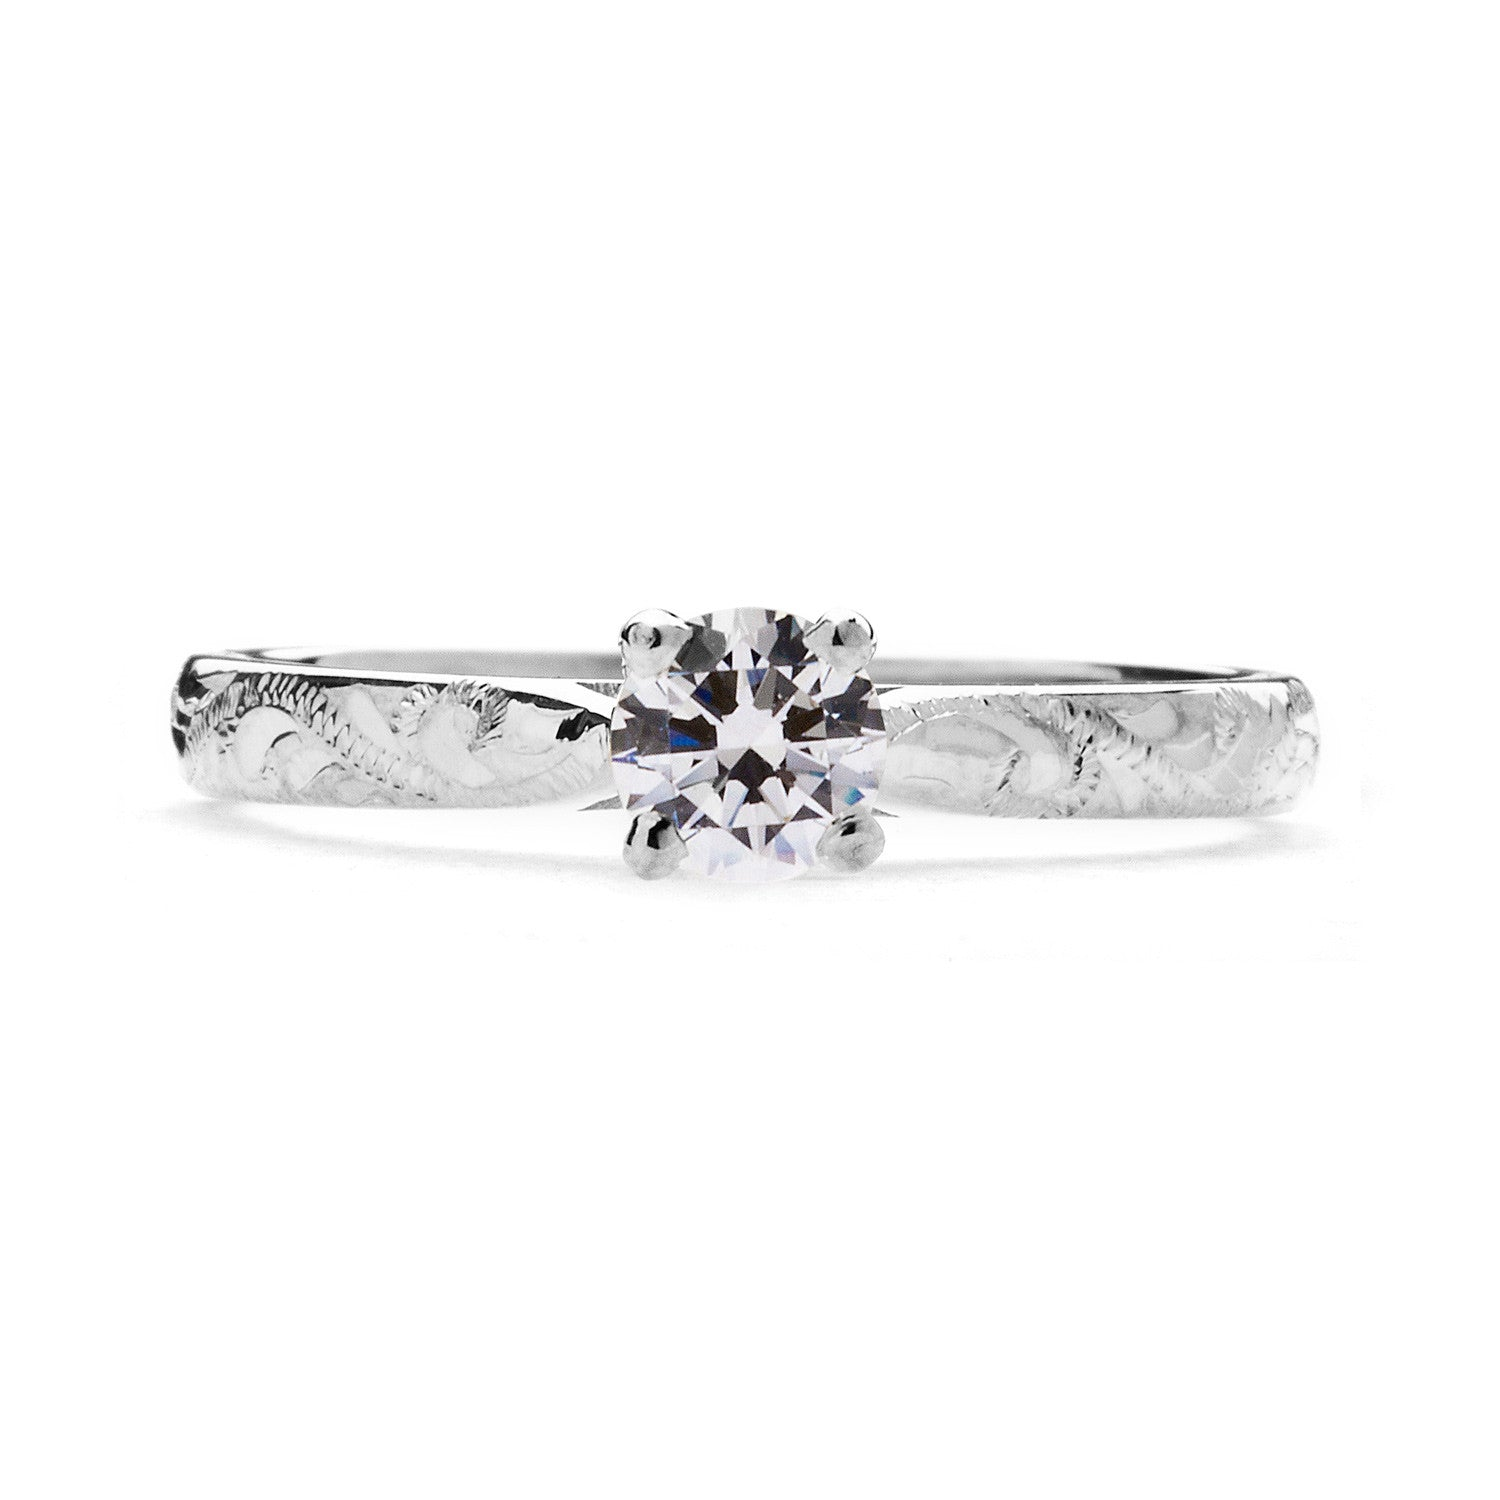 Athena Ethical Diamond Platinum Engagement Ring